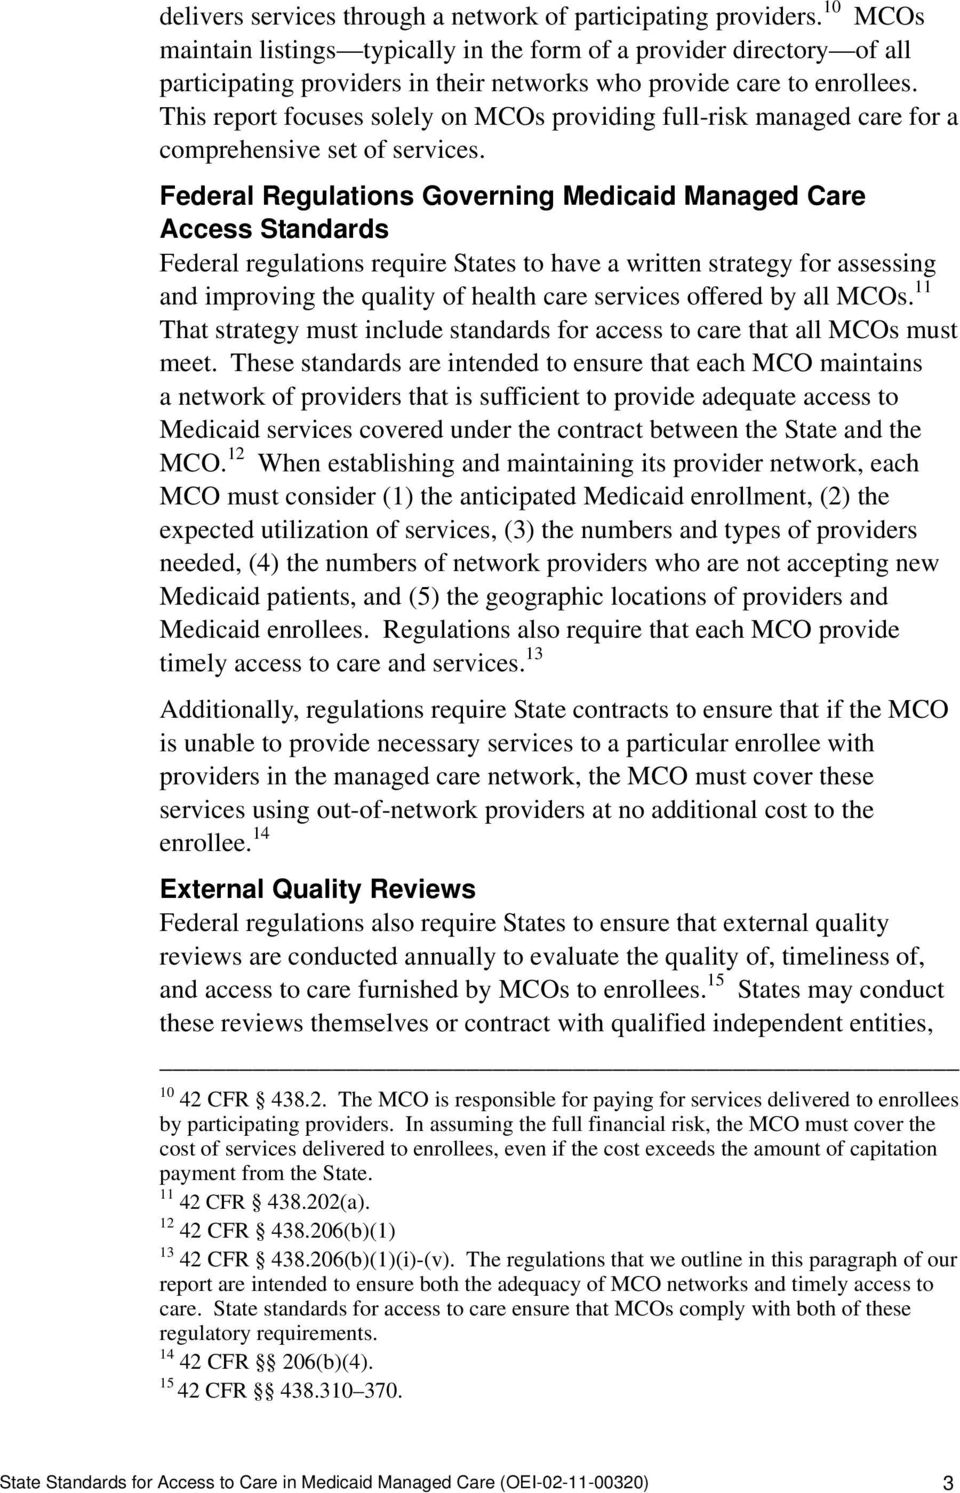 This report focuses solely on MCOs providing full-risk managed care for a comprehensive set of services.